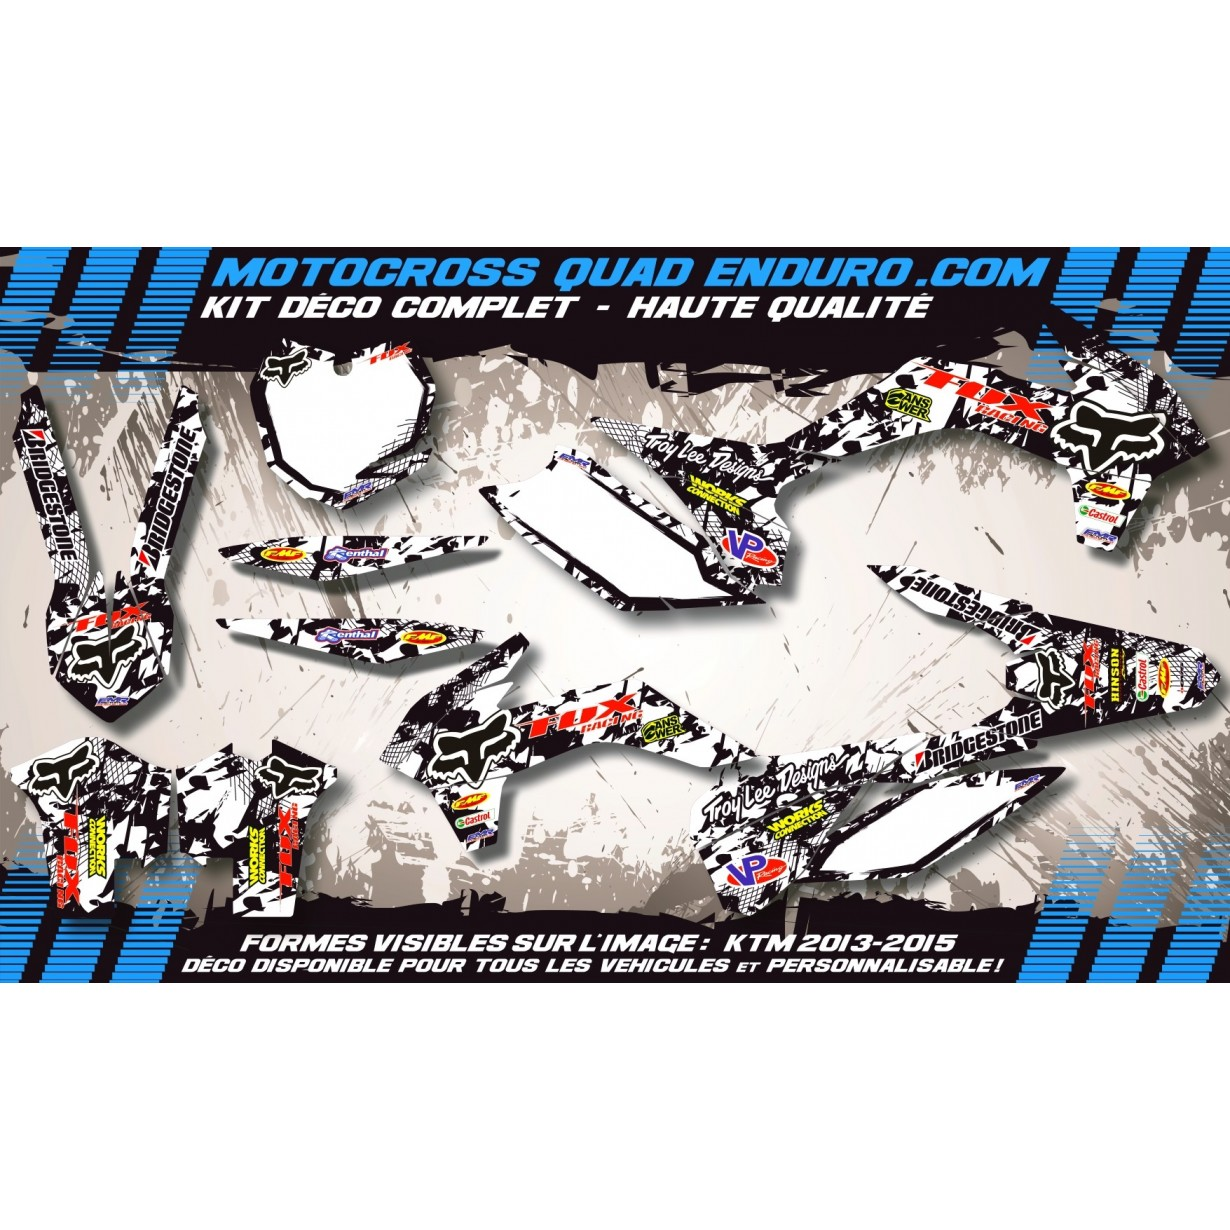 KIT DÉCO Perso FE/TE 14-16 ENDURO FOX MA9F